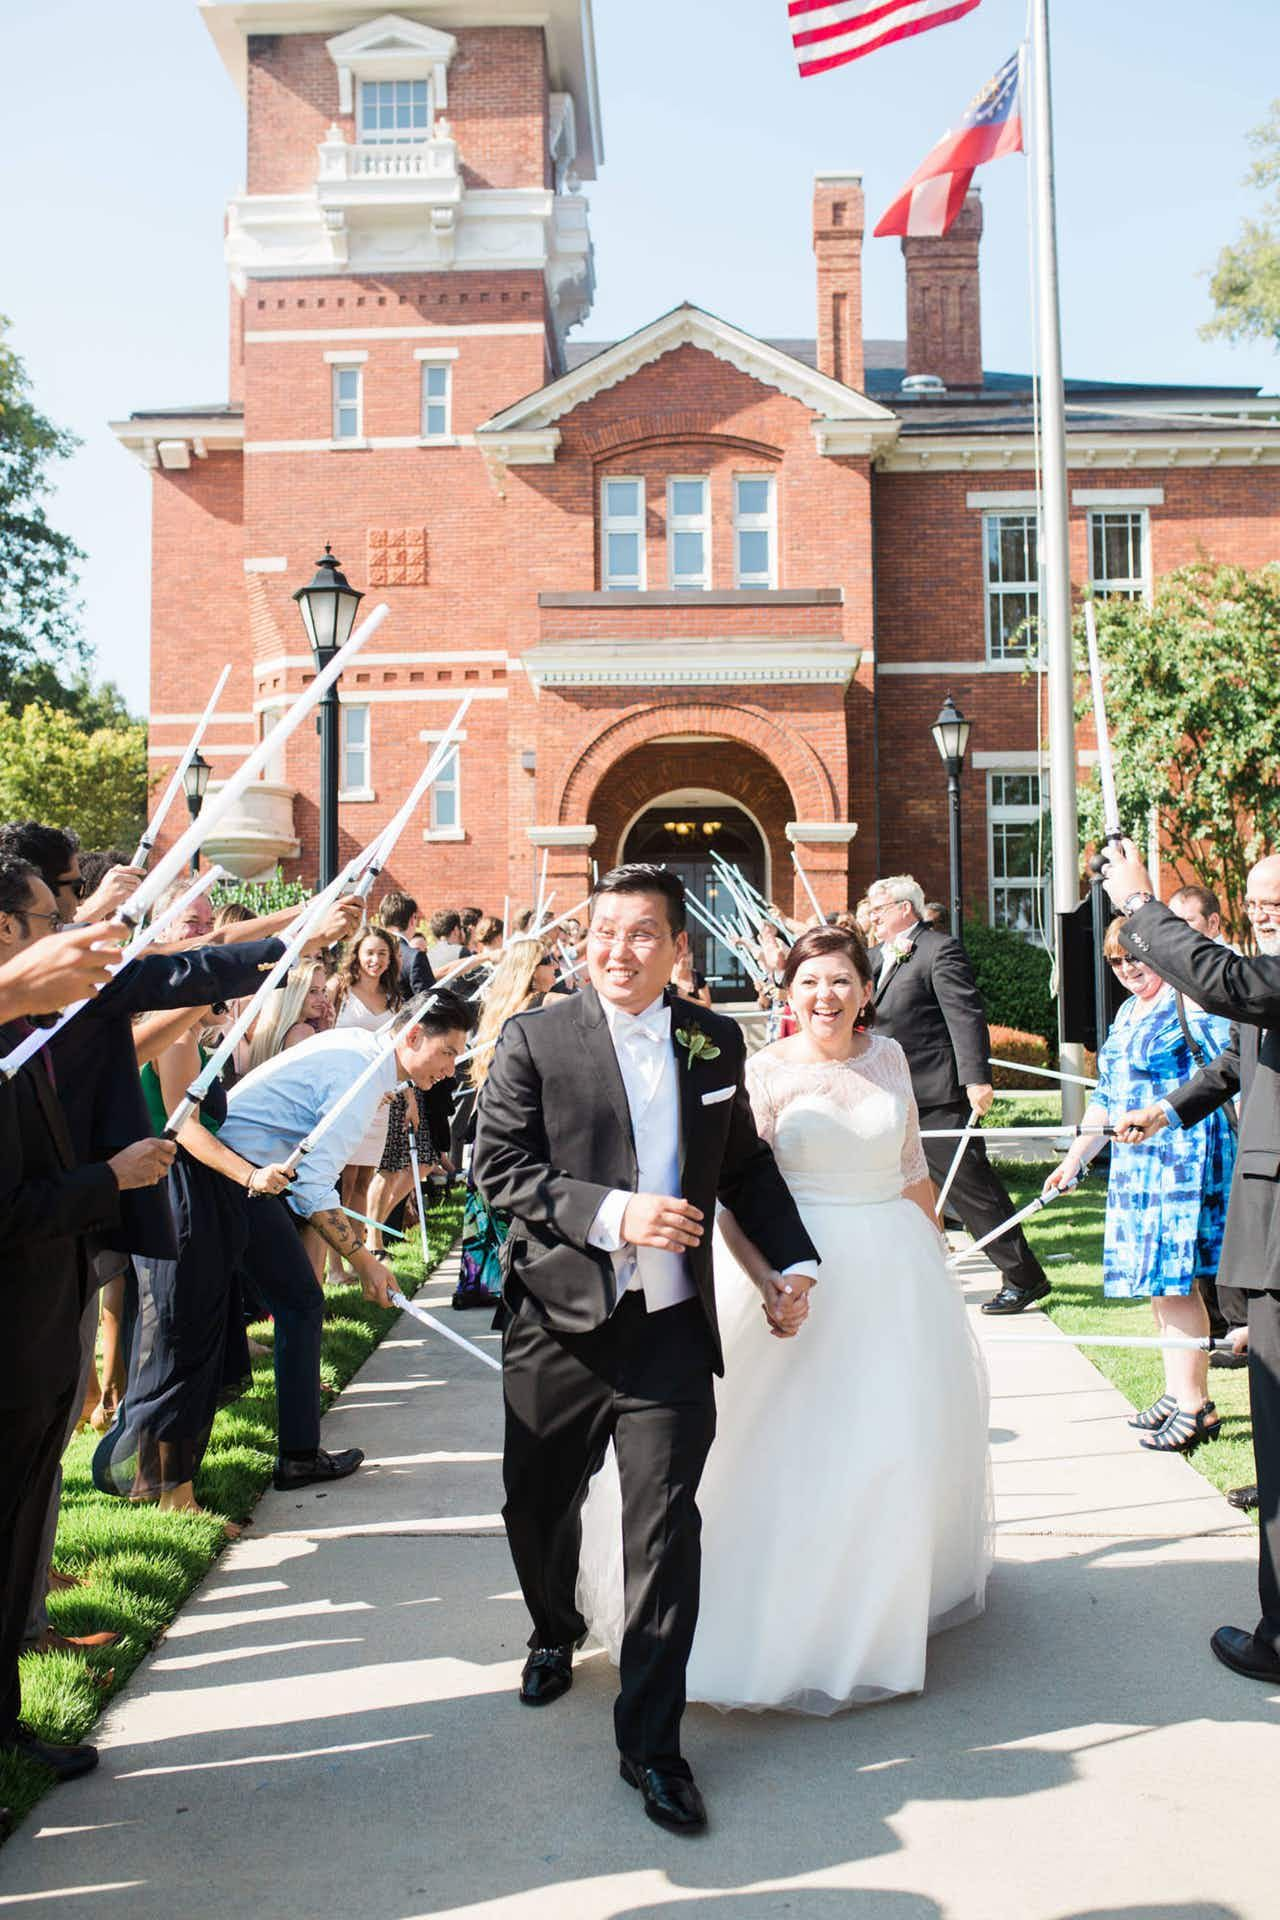 A Romantic Ceremony at Historic Courthouse